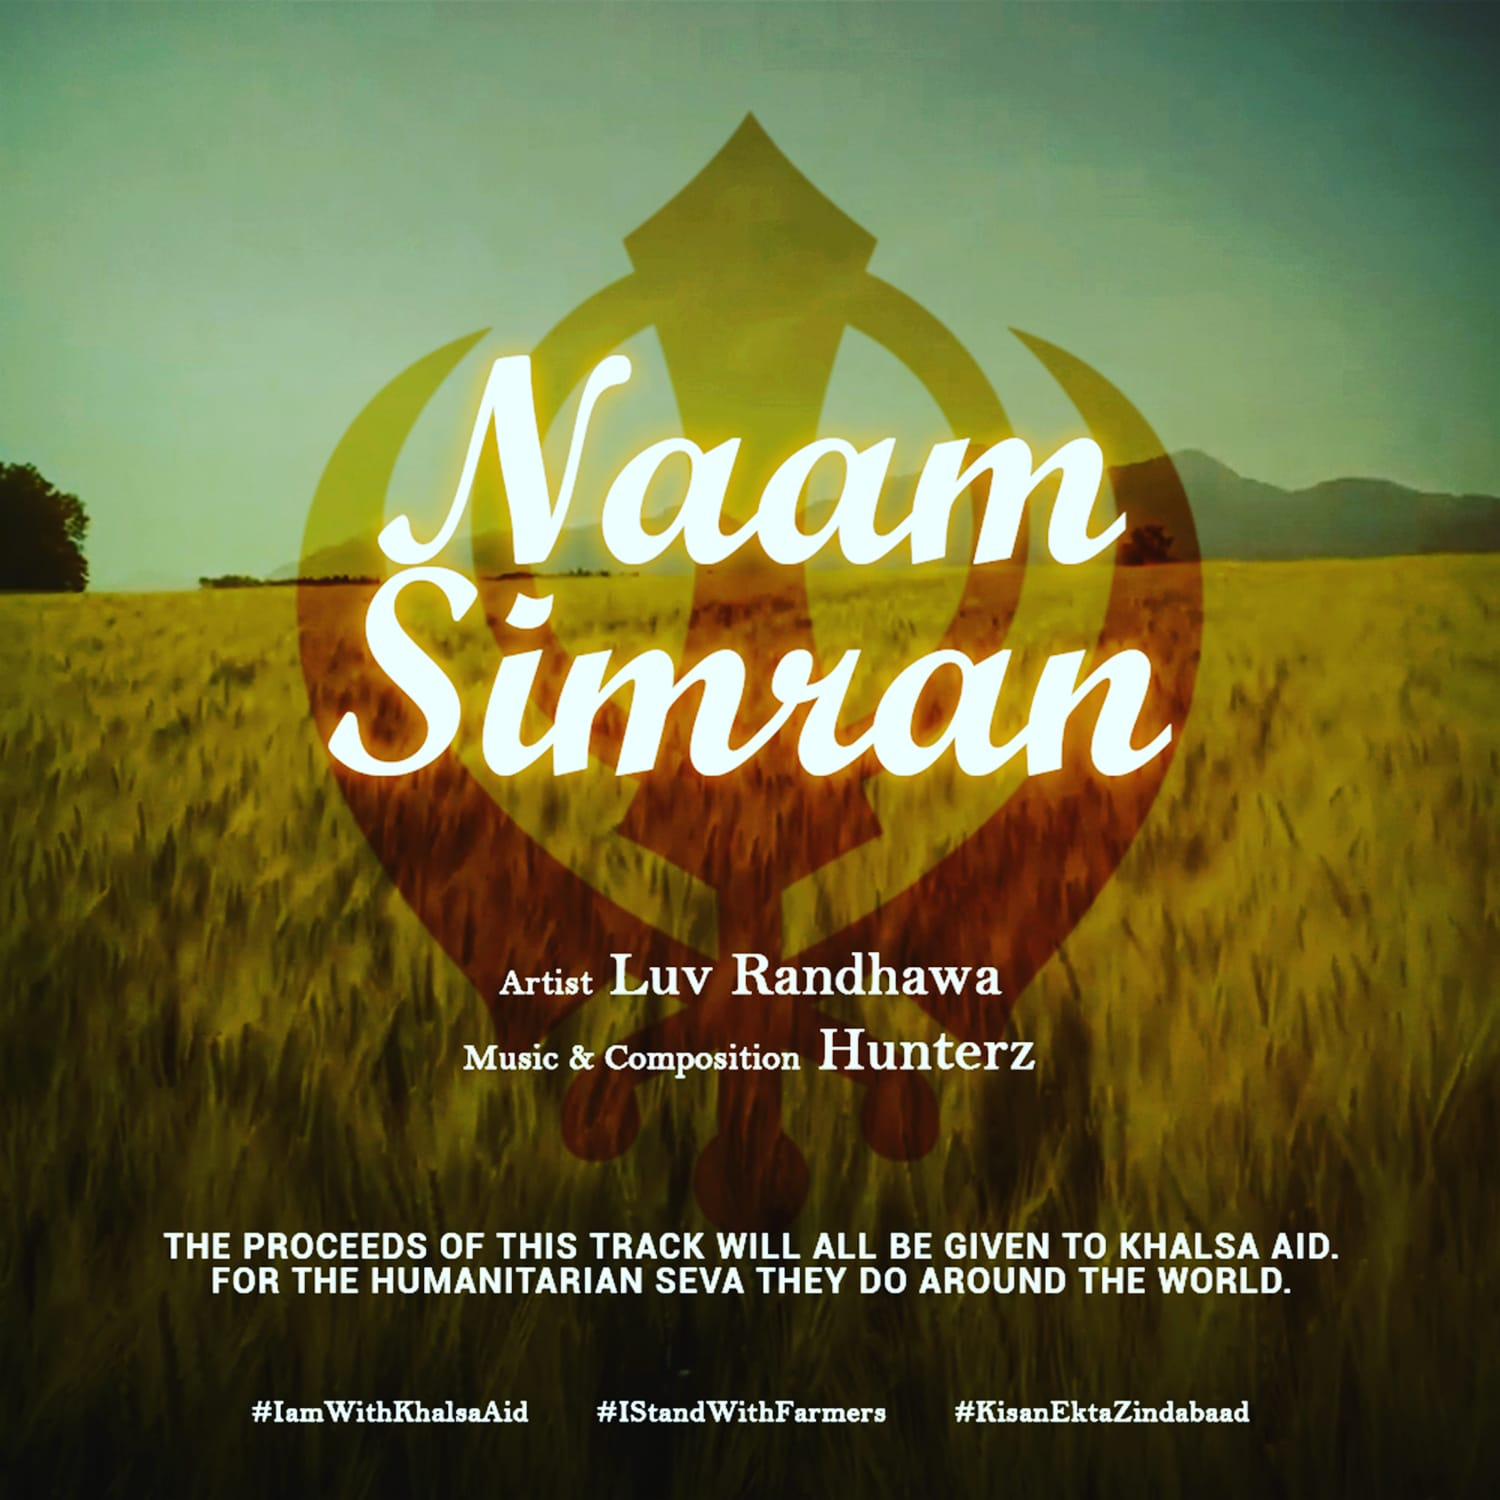 Luv Randhawa, releases a new track in support people, dealing with Mental Health issues, during these Pandemic Times. This soothing record entitled NAAM SIMRAN. Please enjoy..